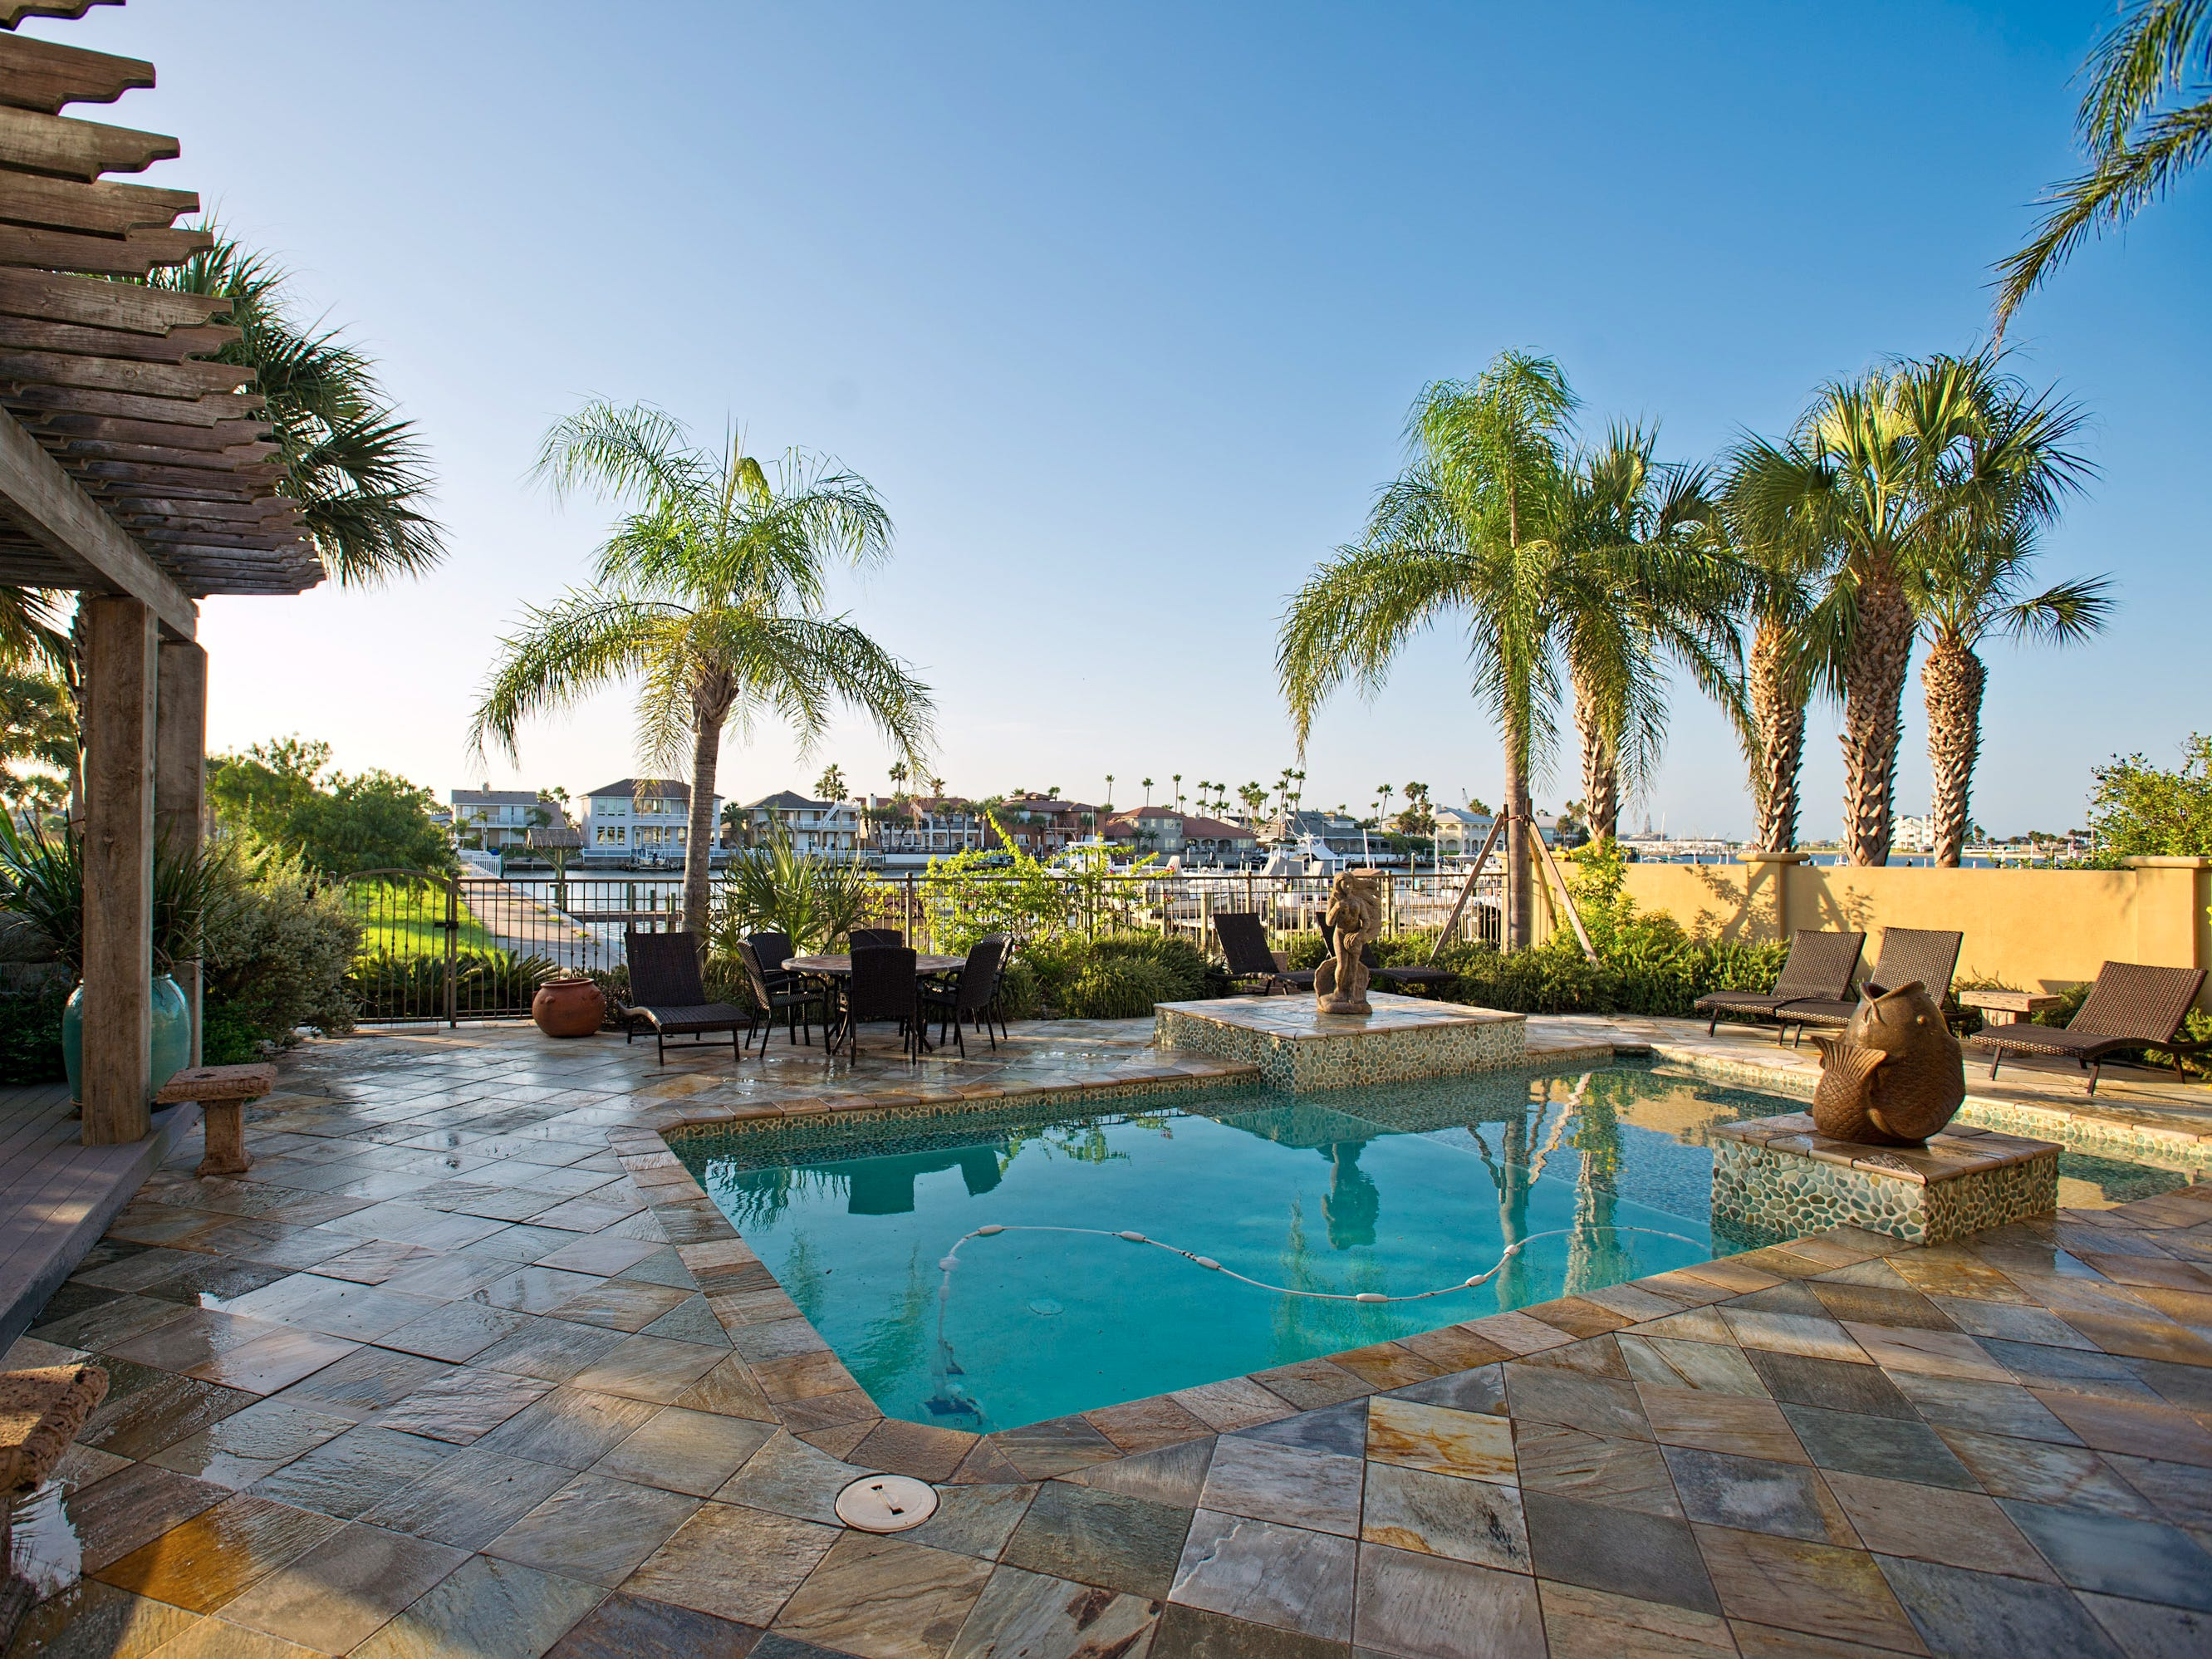 The a Baja entry pool accented with artisan stone is surrounded by  beautiful slate tile overlooking the Island Moorings Marina and the home's private boat slip, minutes away from world class fishing and the Gulf of Mexico at Port Aransas.